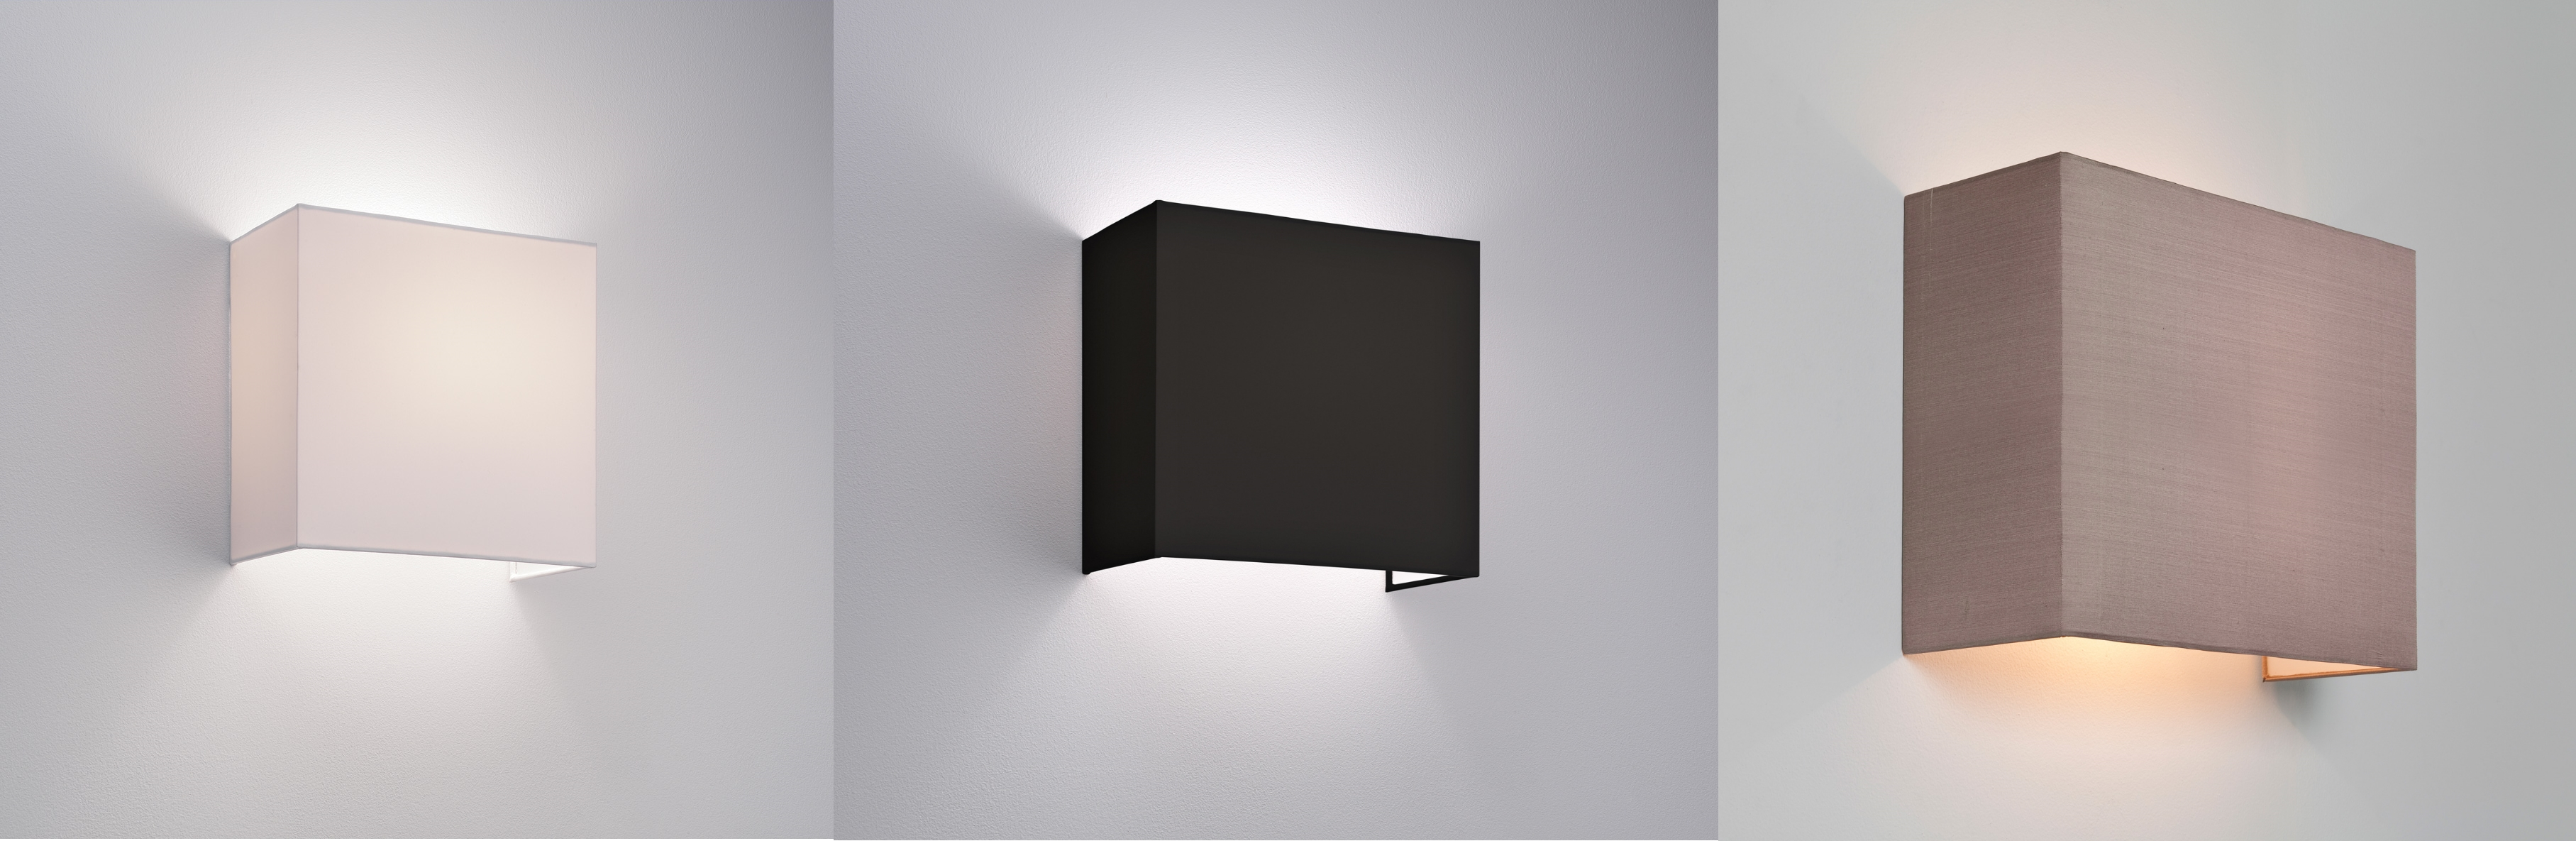 Wall Lamp Shades For Living Room : Astro Chuo 250 fabric wall light shade 60W E27 white black oyster eBay